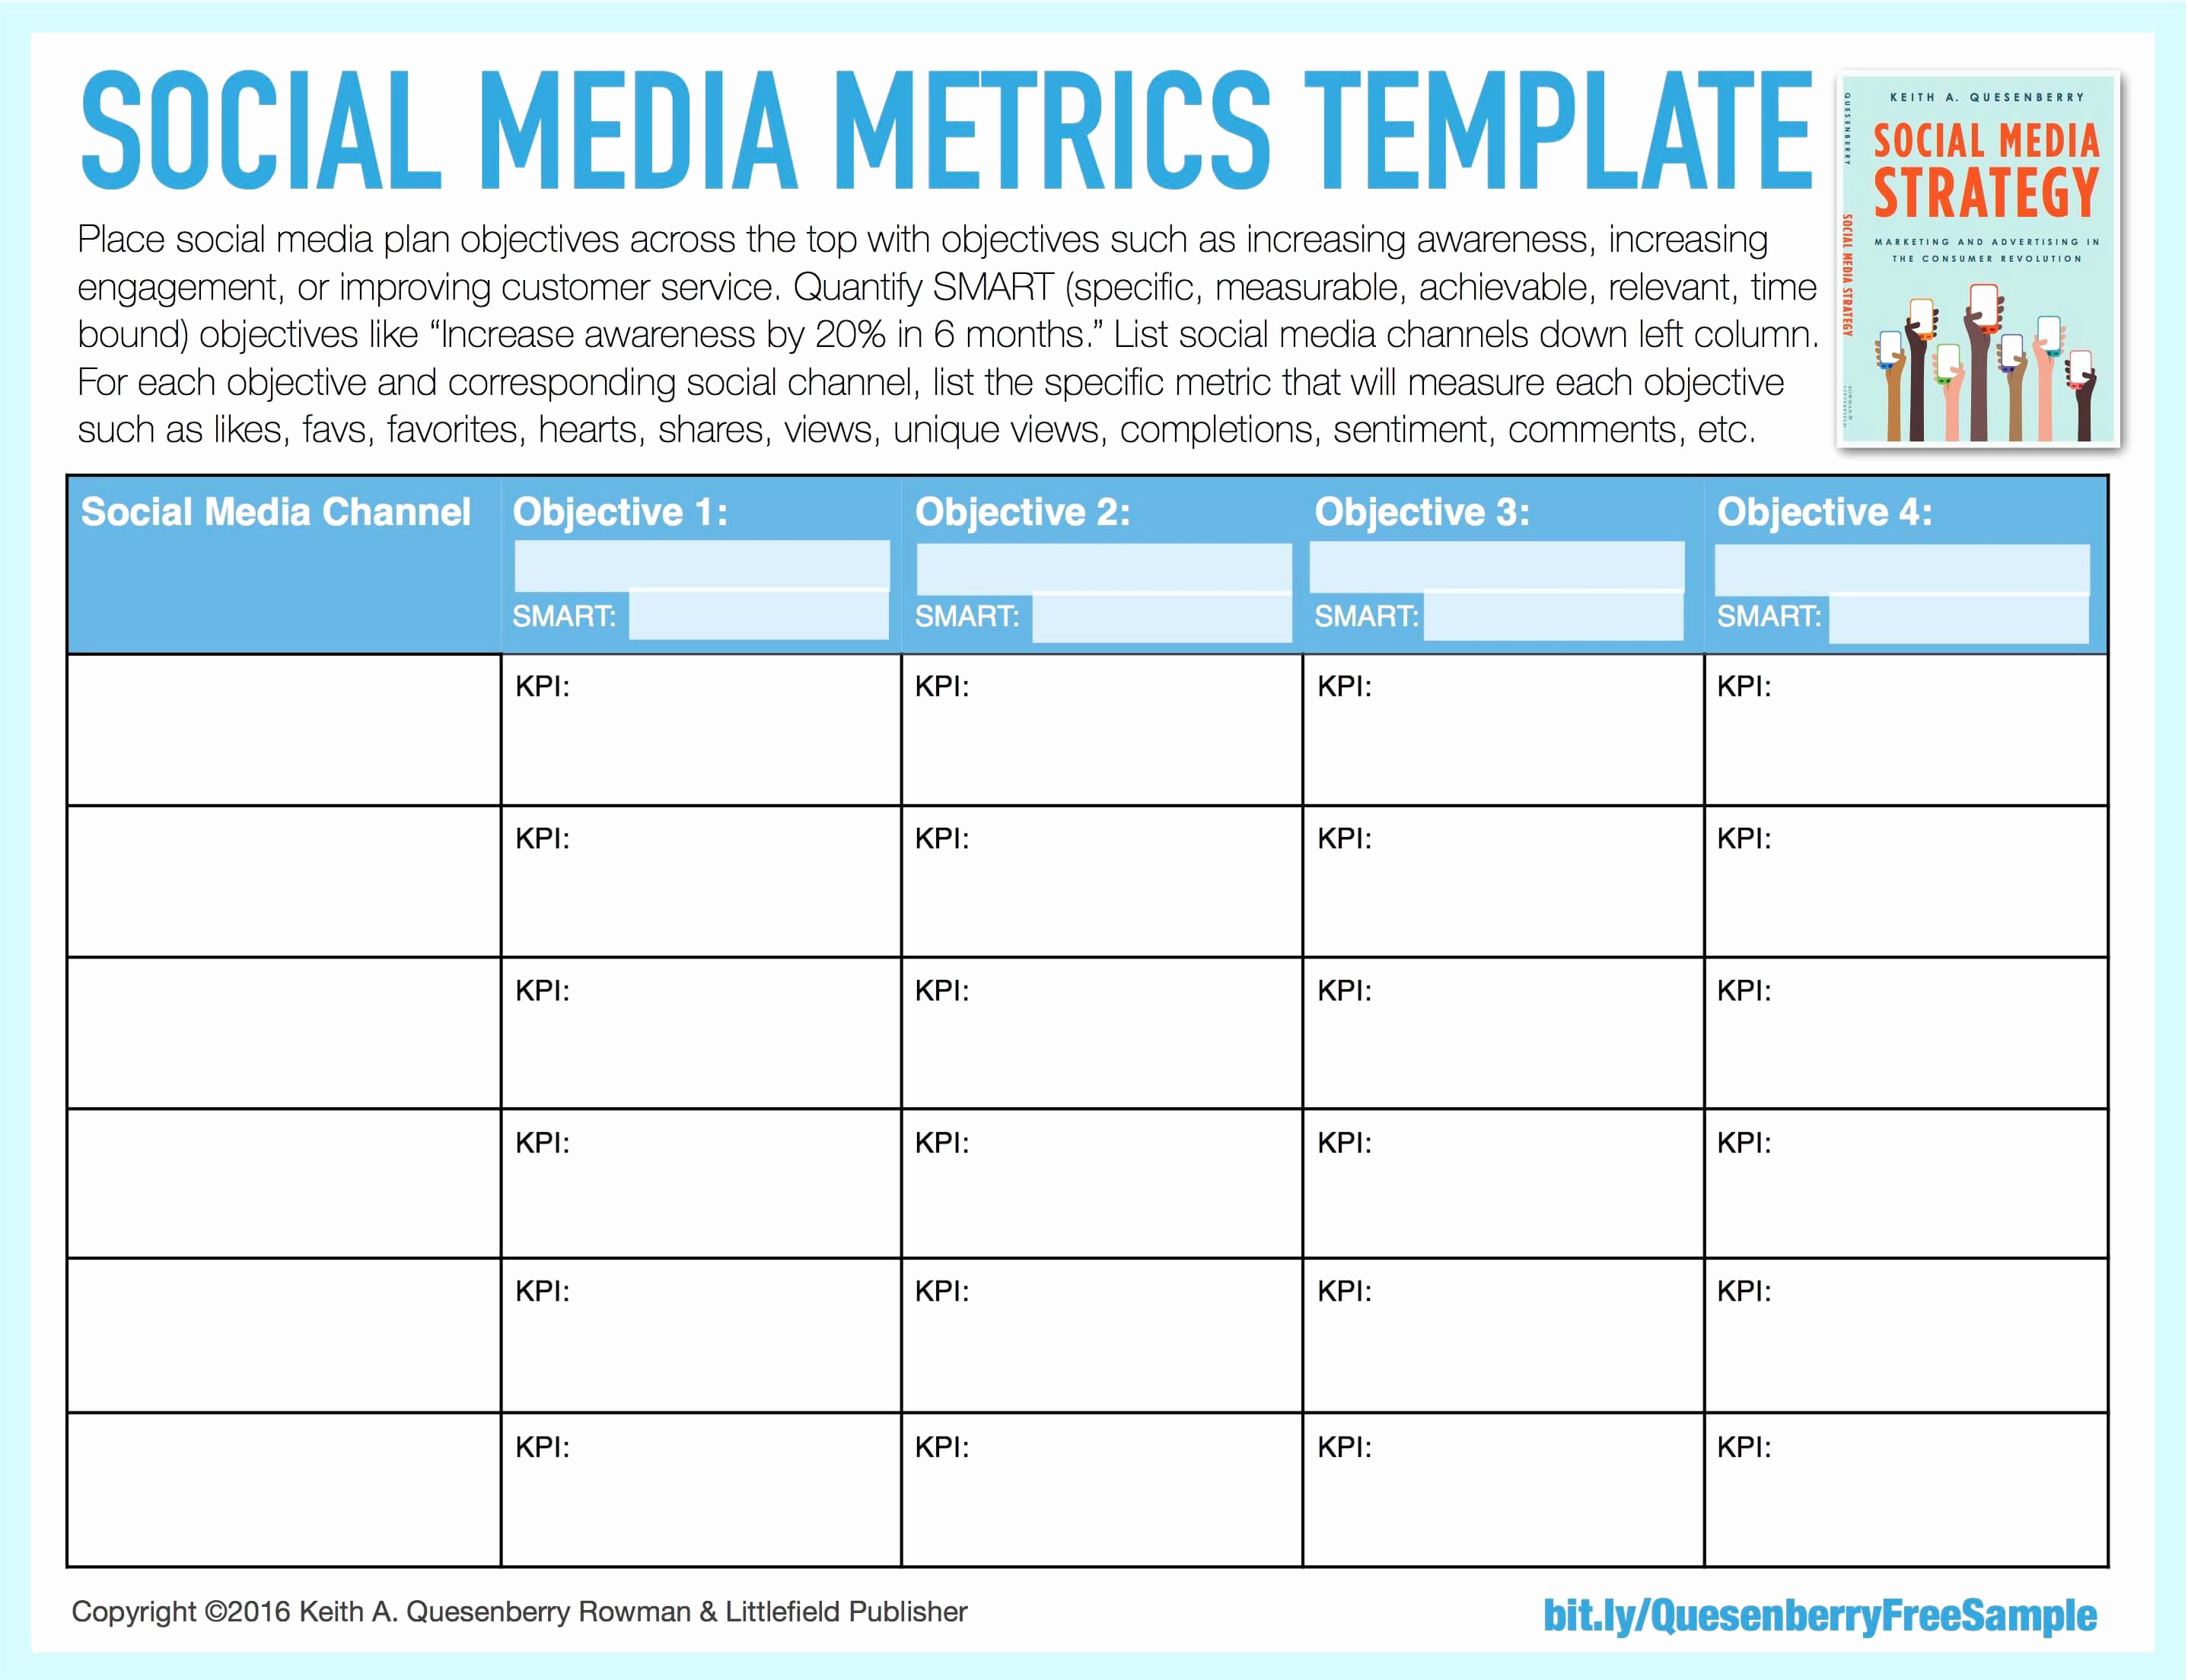 Social Media Report Templates Fresh social Media Templates Keith A Quesenberry